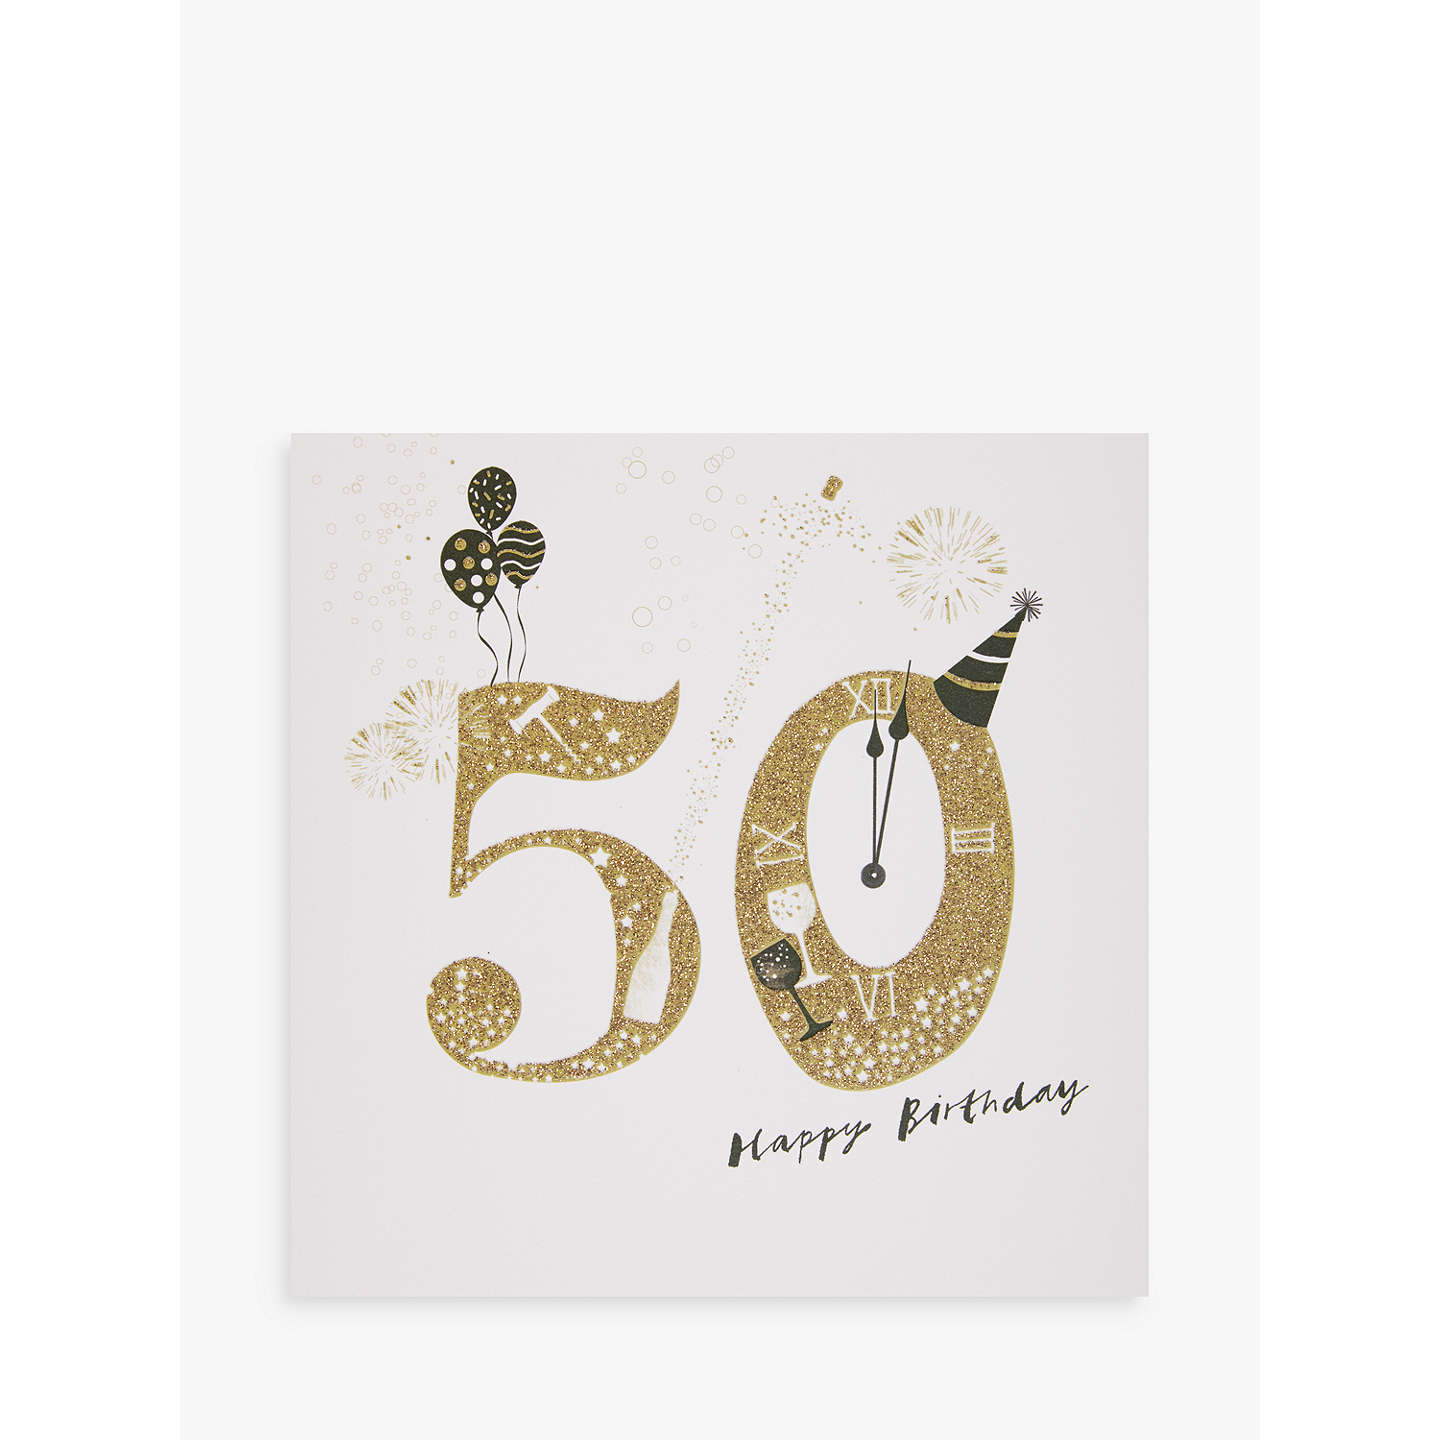 Woodmansterne party hat champagne 50th birthday card at john lewis buywoodmansterne party hat champagne 50th birthday card online at johnlewis bookmarktalkfo Gallery